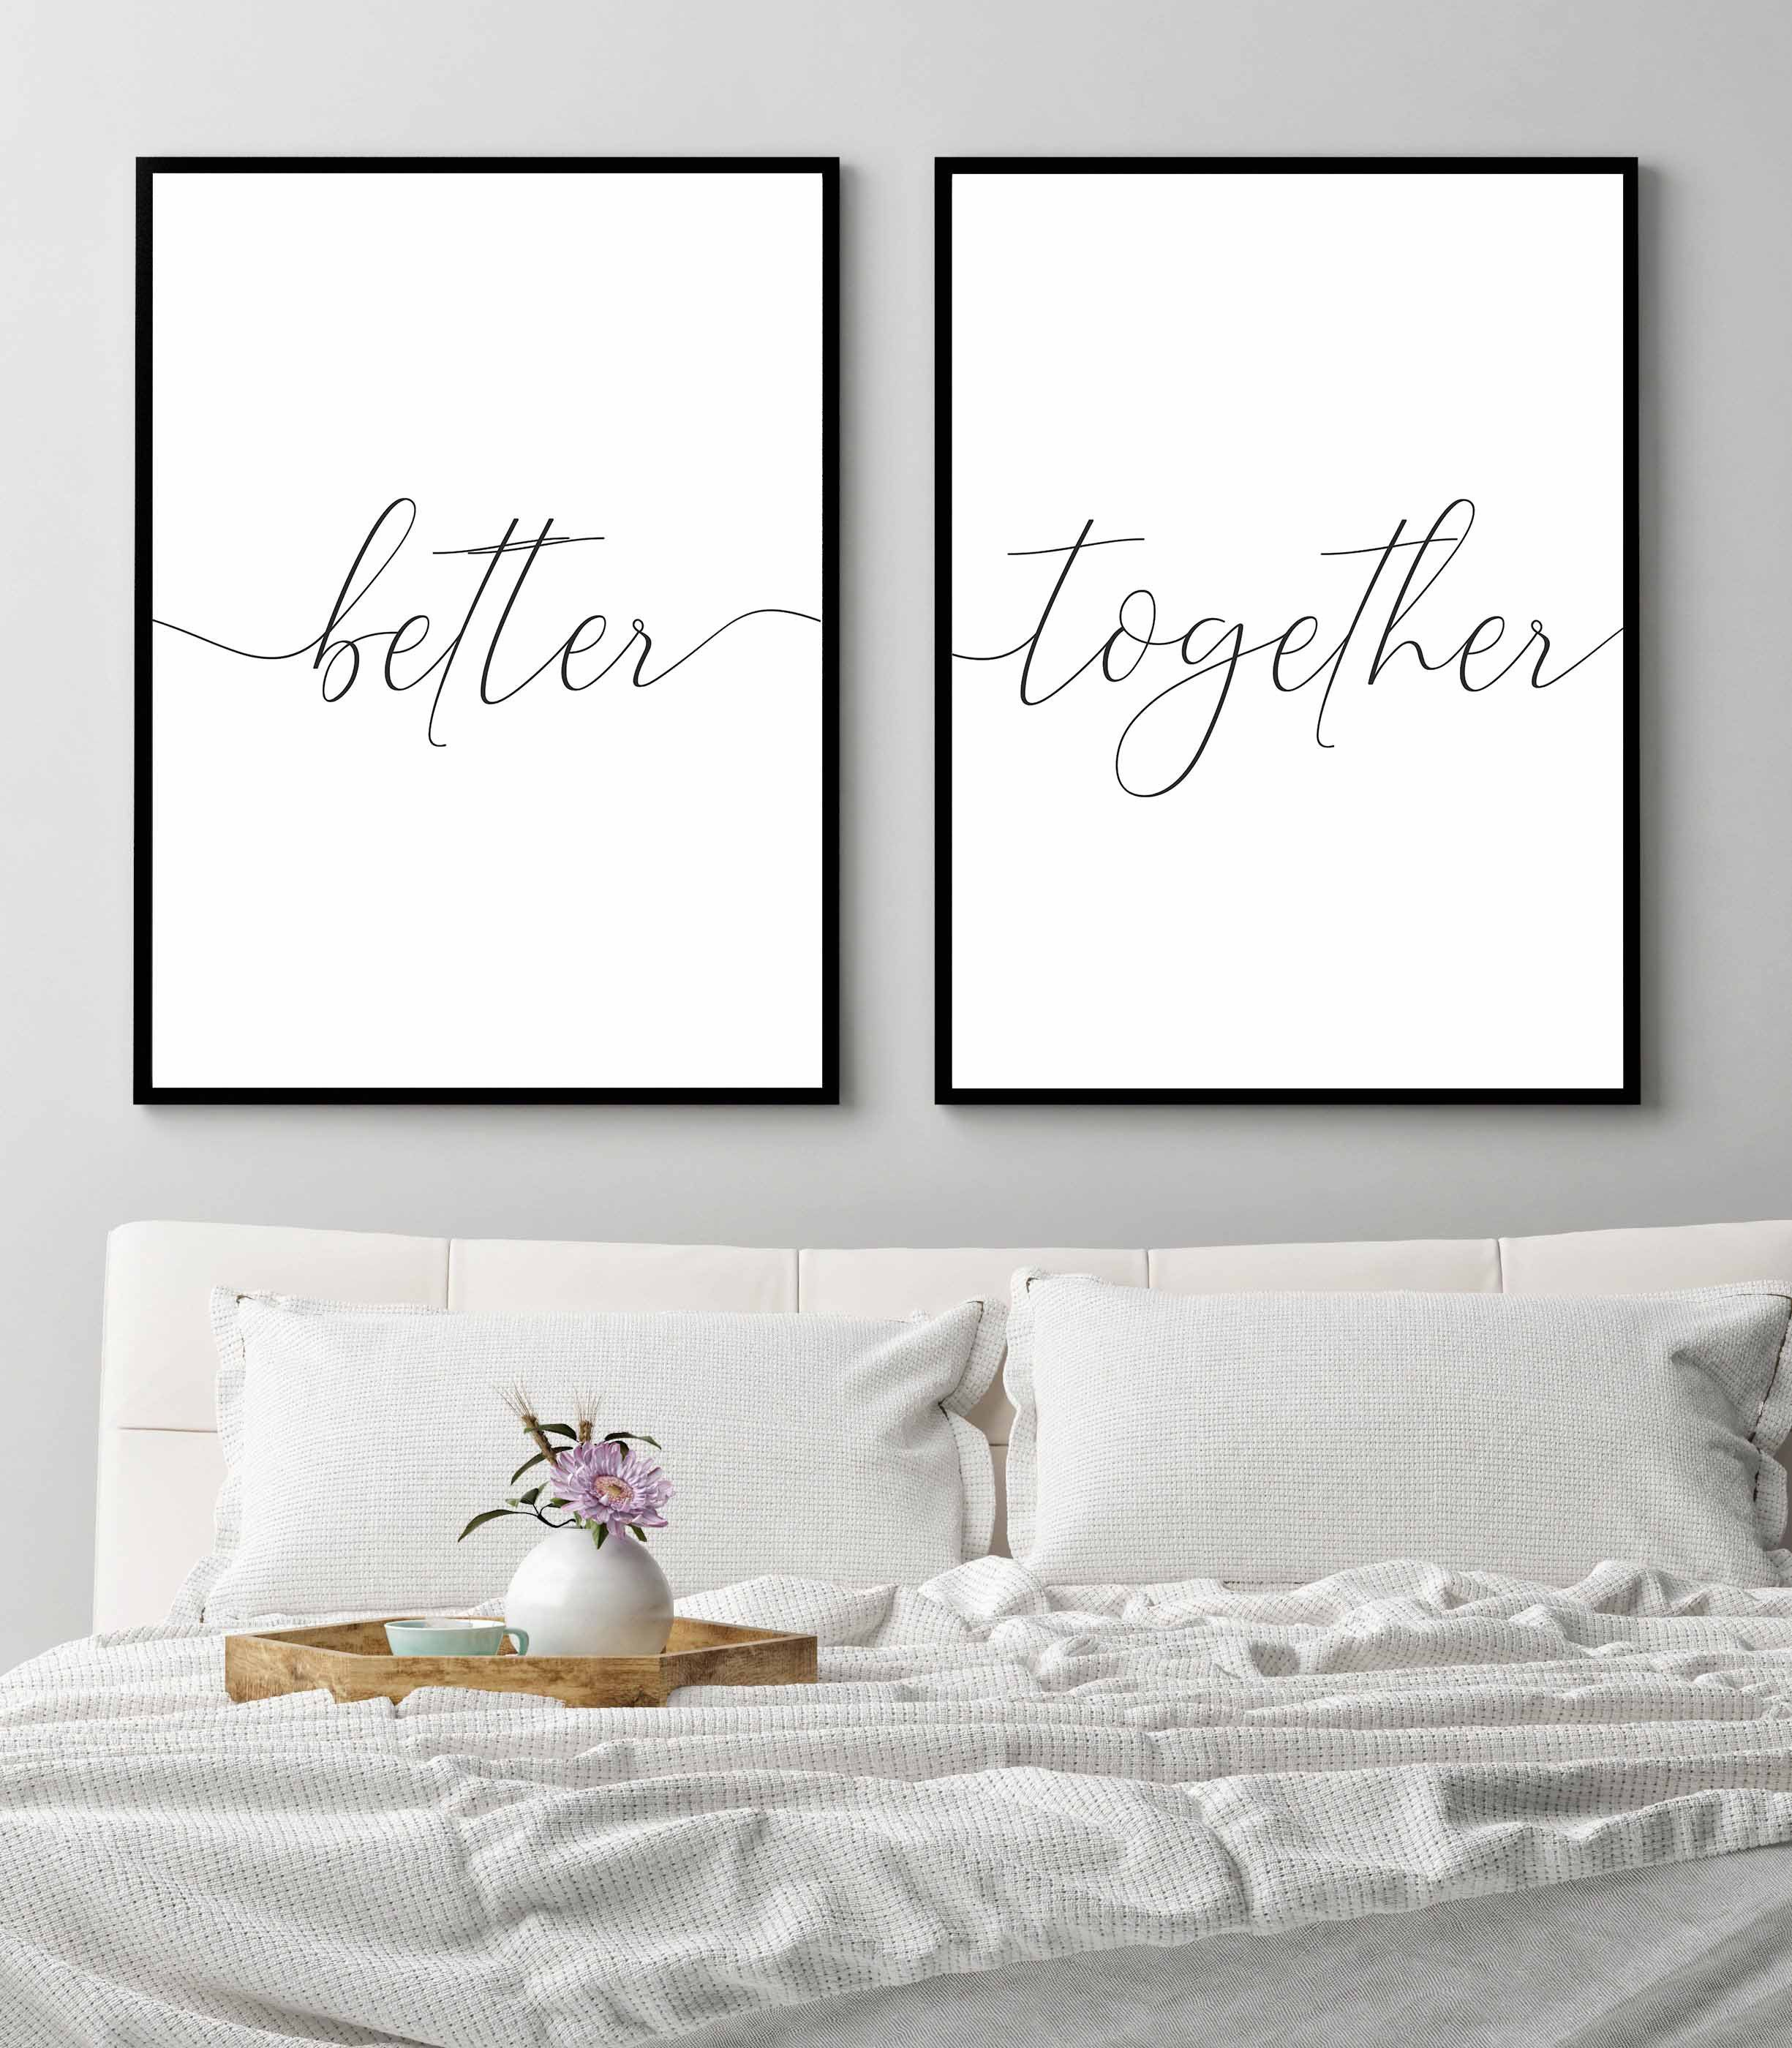 Better Together Signbedroom Wall Art Printsset Of 2 Etsy Printable Bedroom Decor Above Bed Decor Wall Decor Bedroom